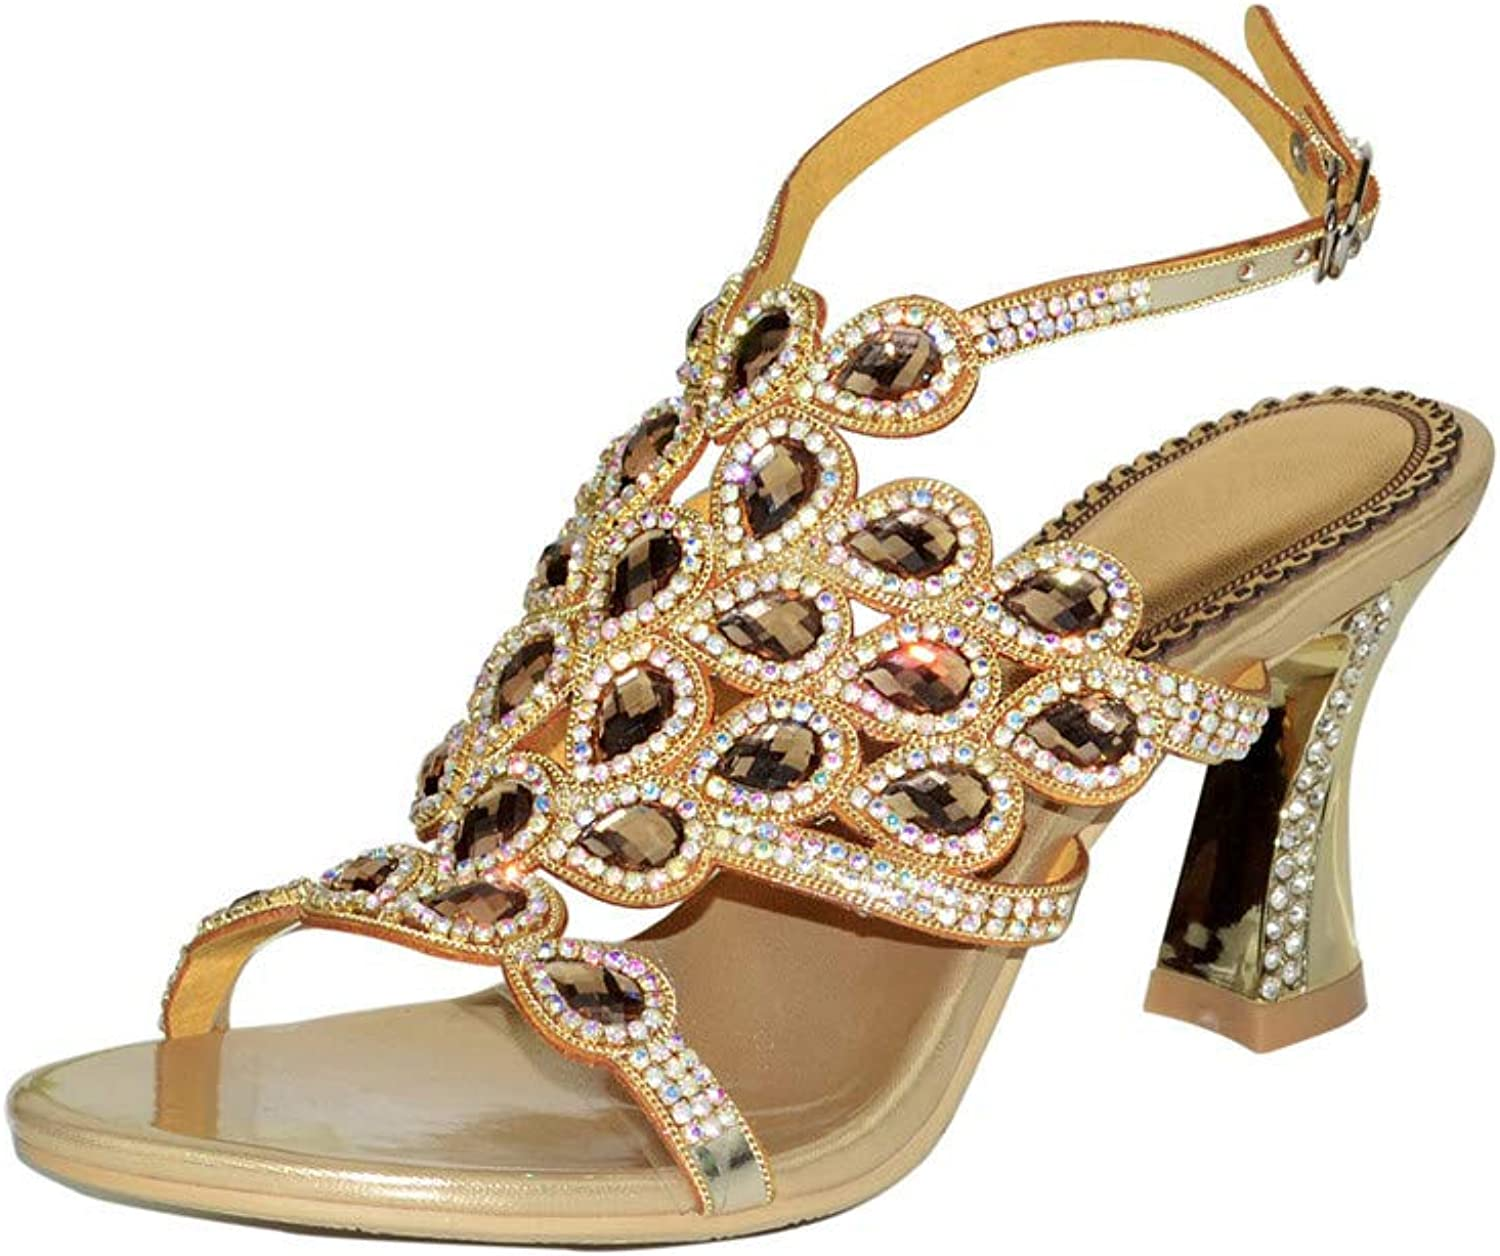 LLBubble High Heels Rhinestone Sandals for Wedding Bridal Open Toe Buckle Strap Leather Prom Evening Party Ladies Sandals GS-L003